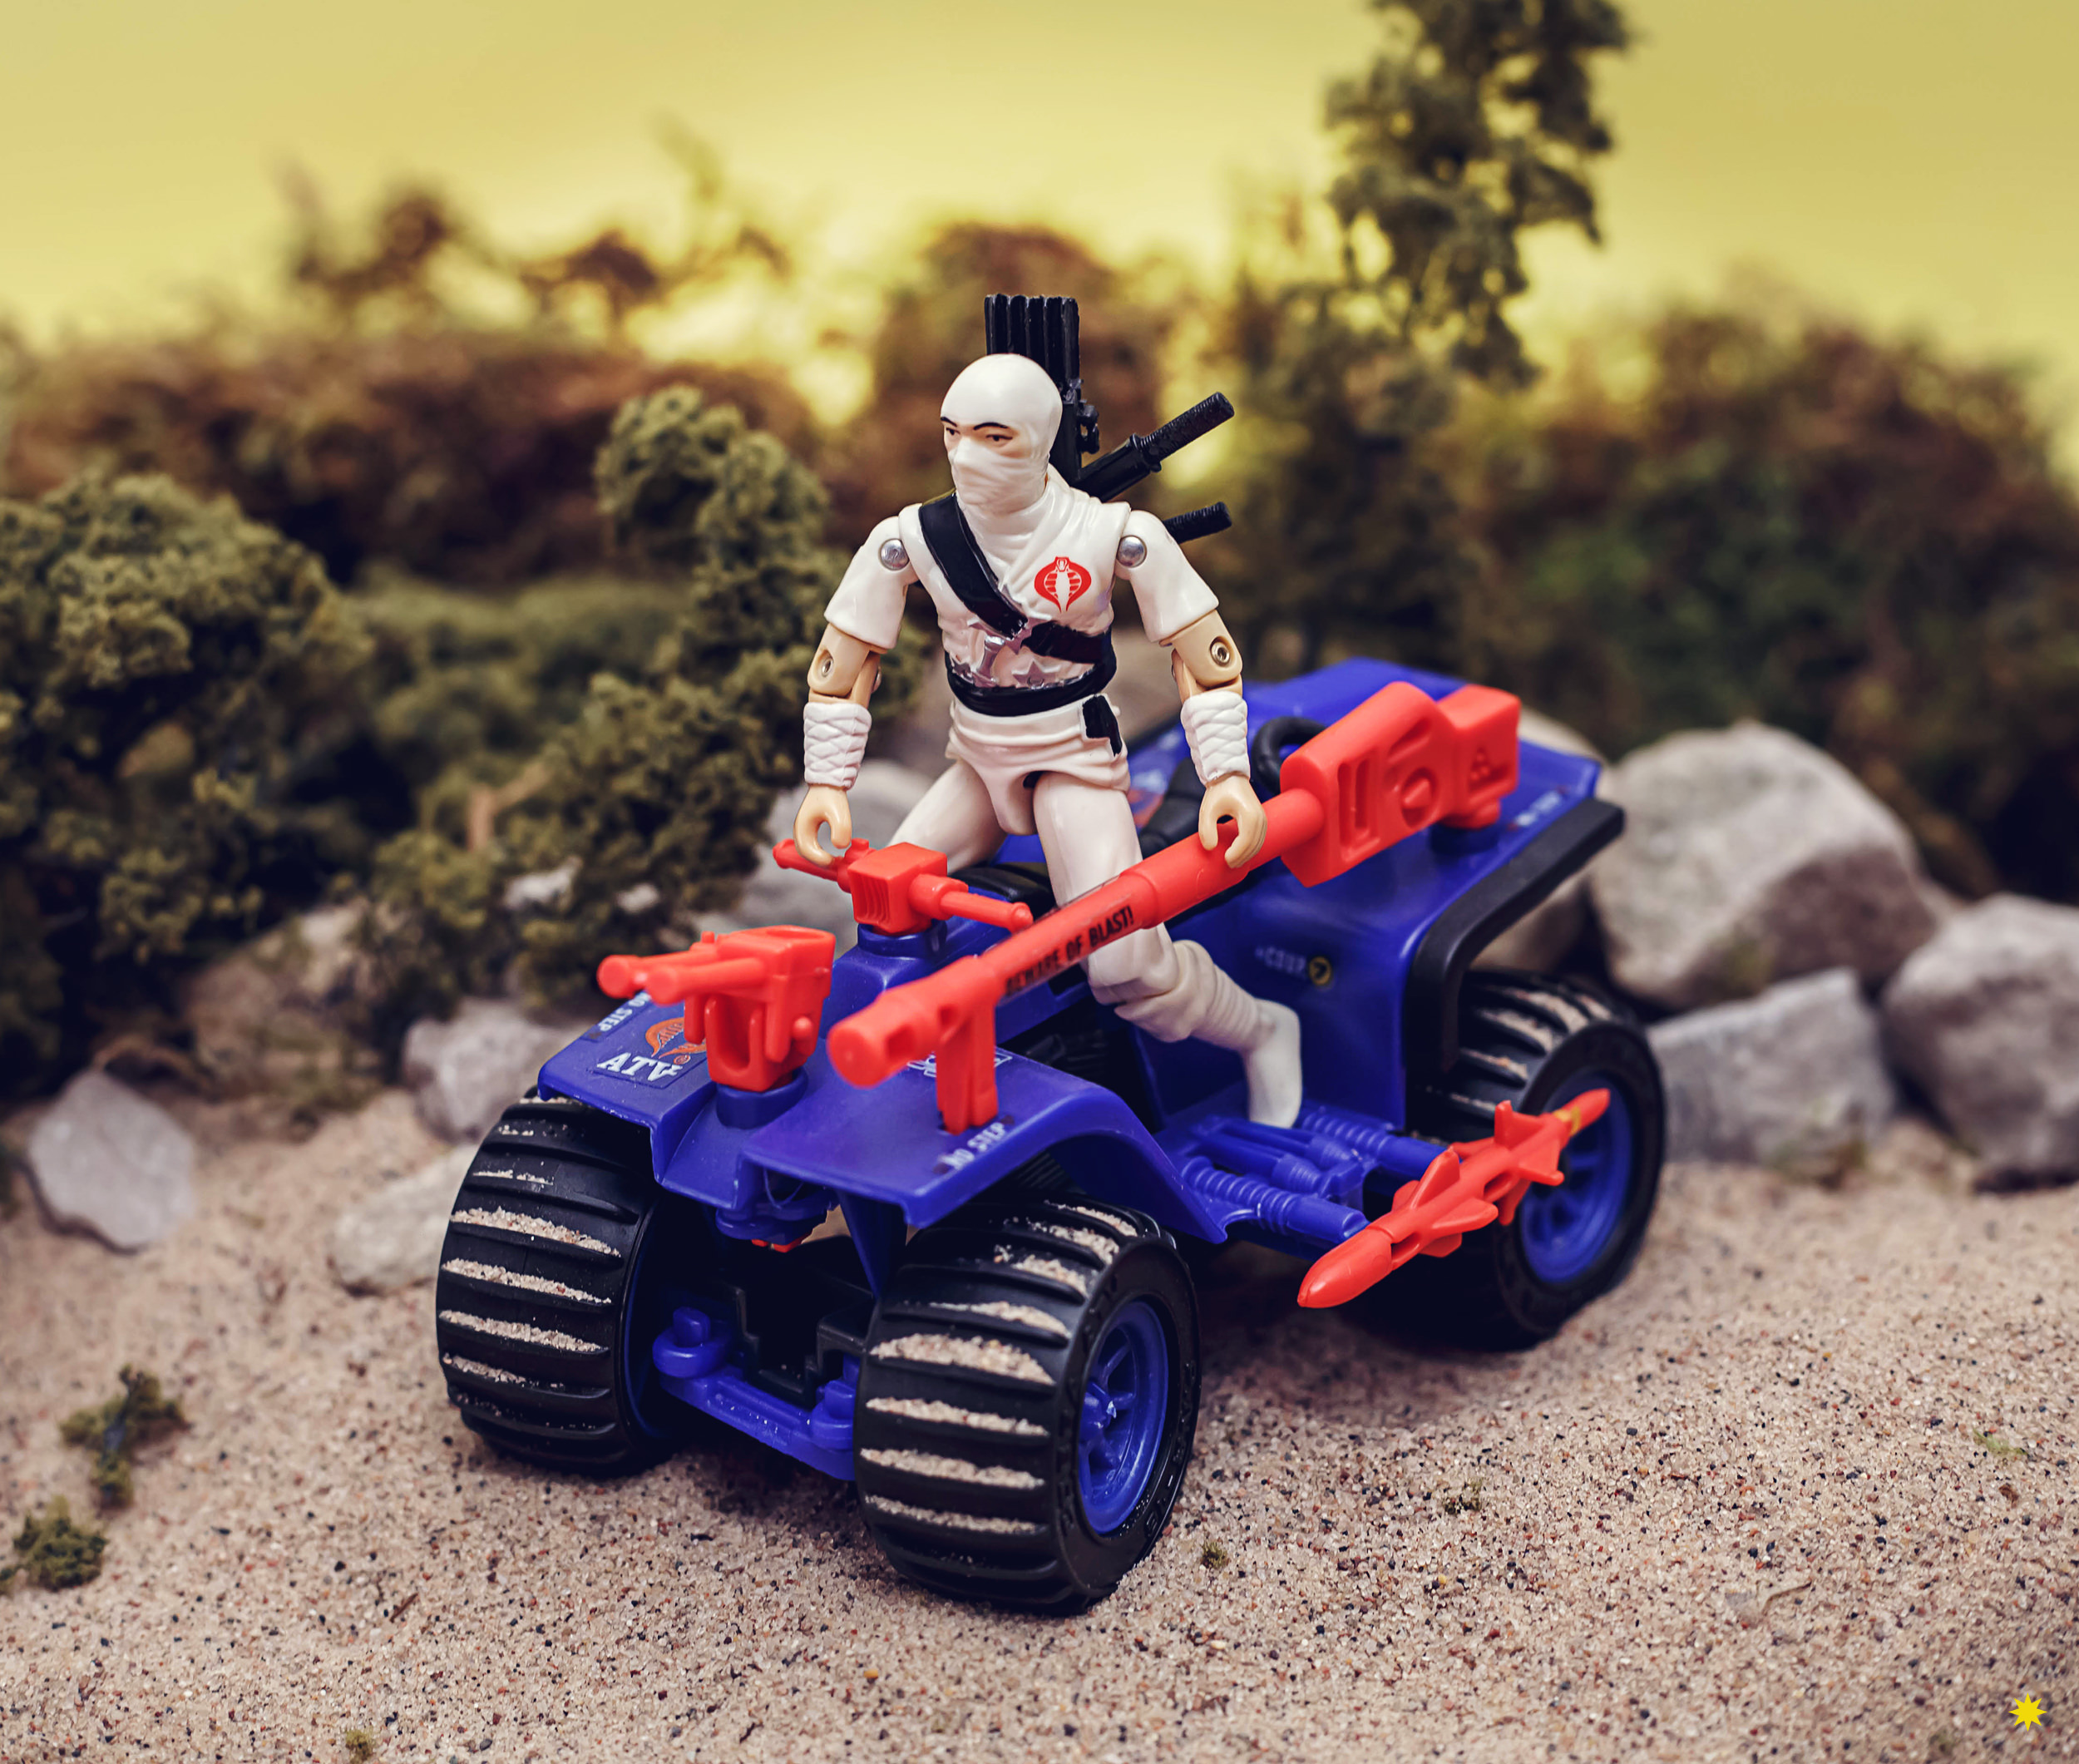 storm-shadow-cobra-ferret-action-figure-toy-photography-paul-panfalone.jpg